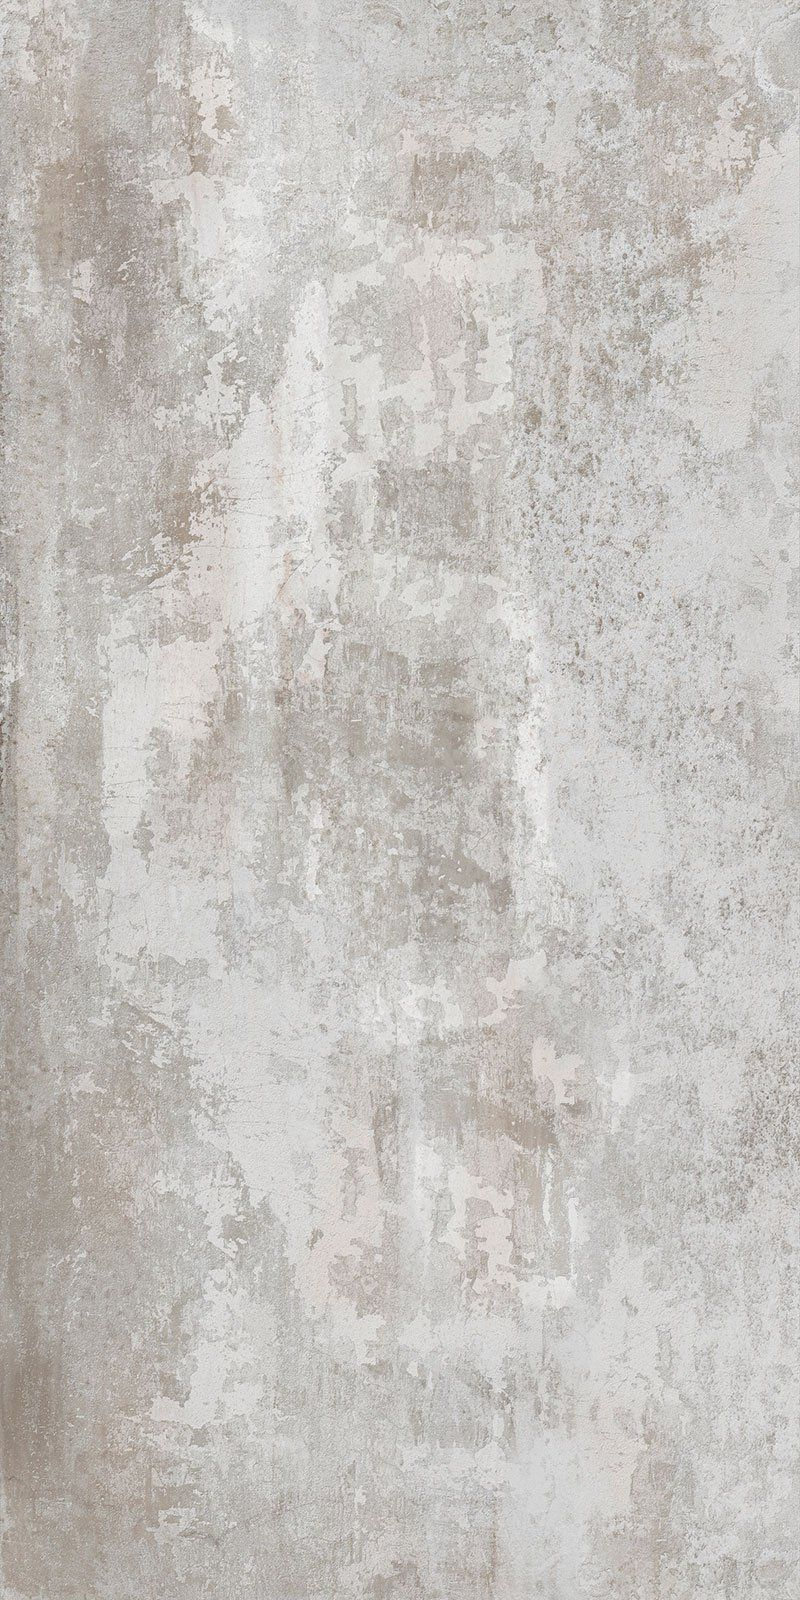 Great Wall Texture Types #Ceiling Texture Types (wall Interior Decor) #WallTexture